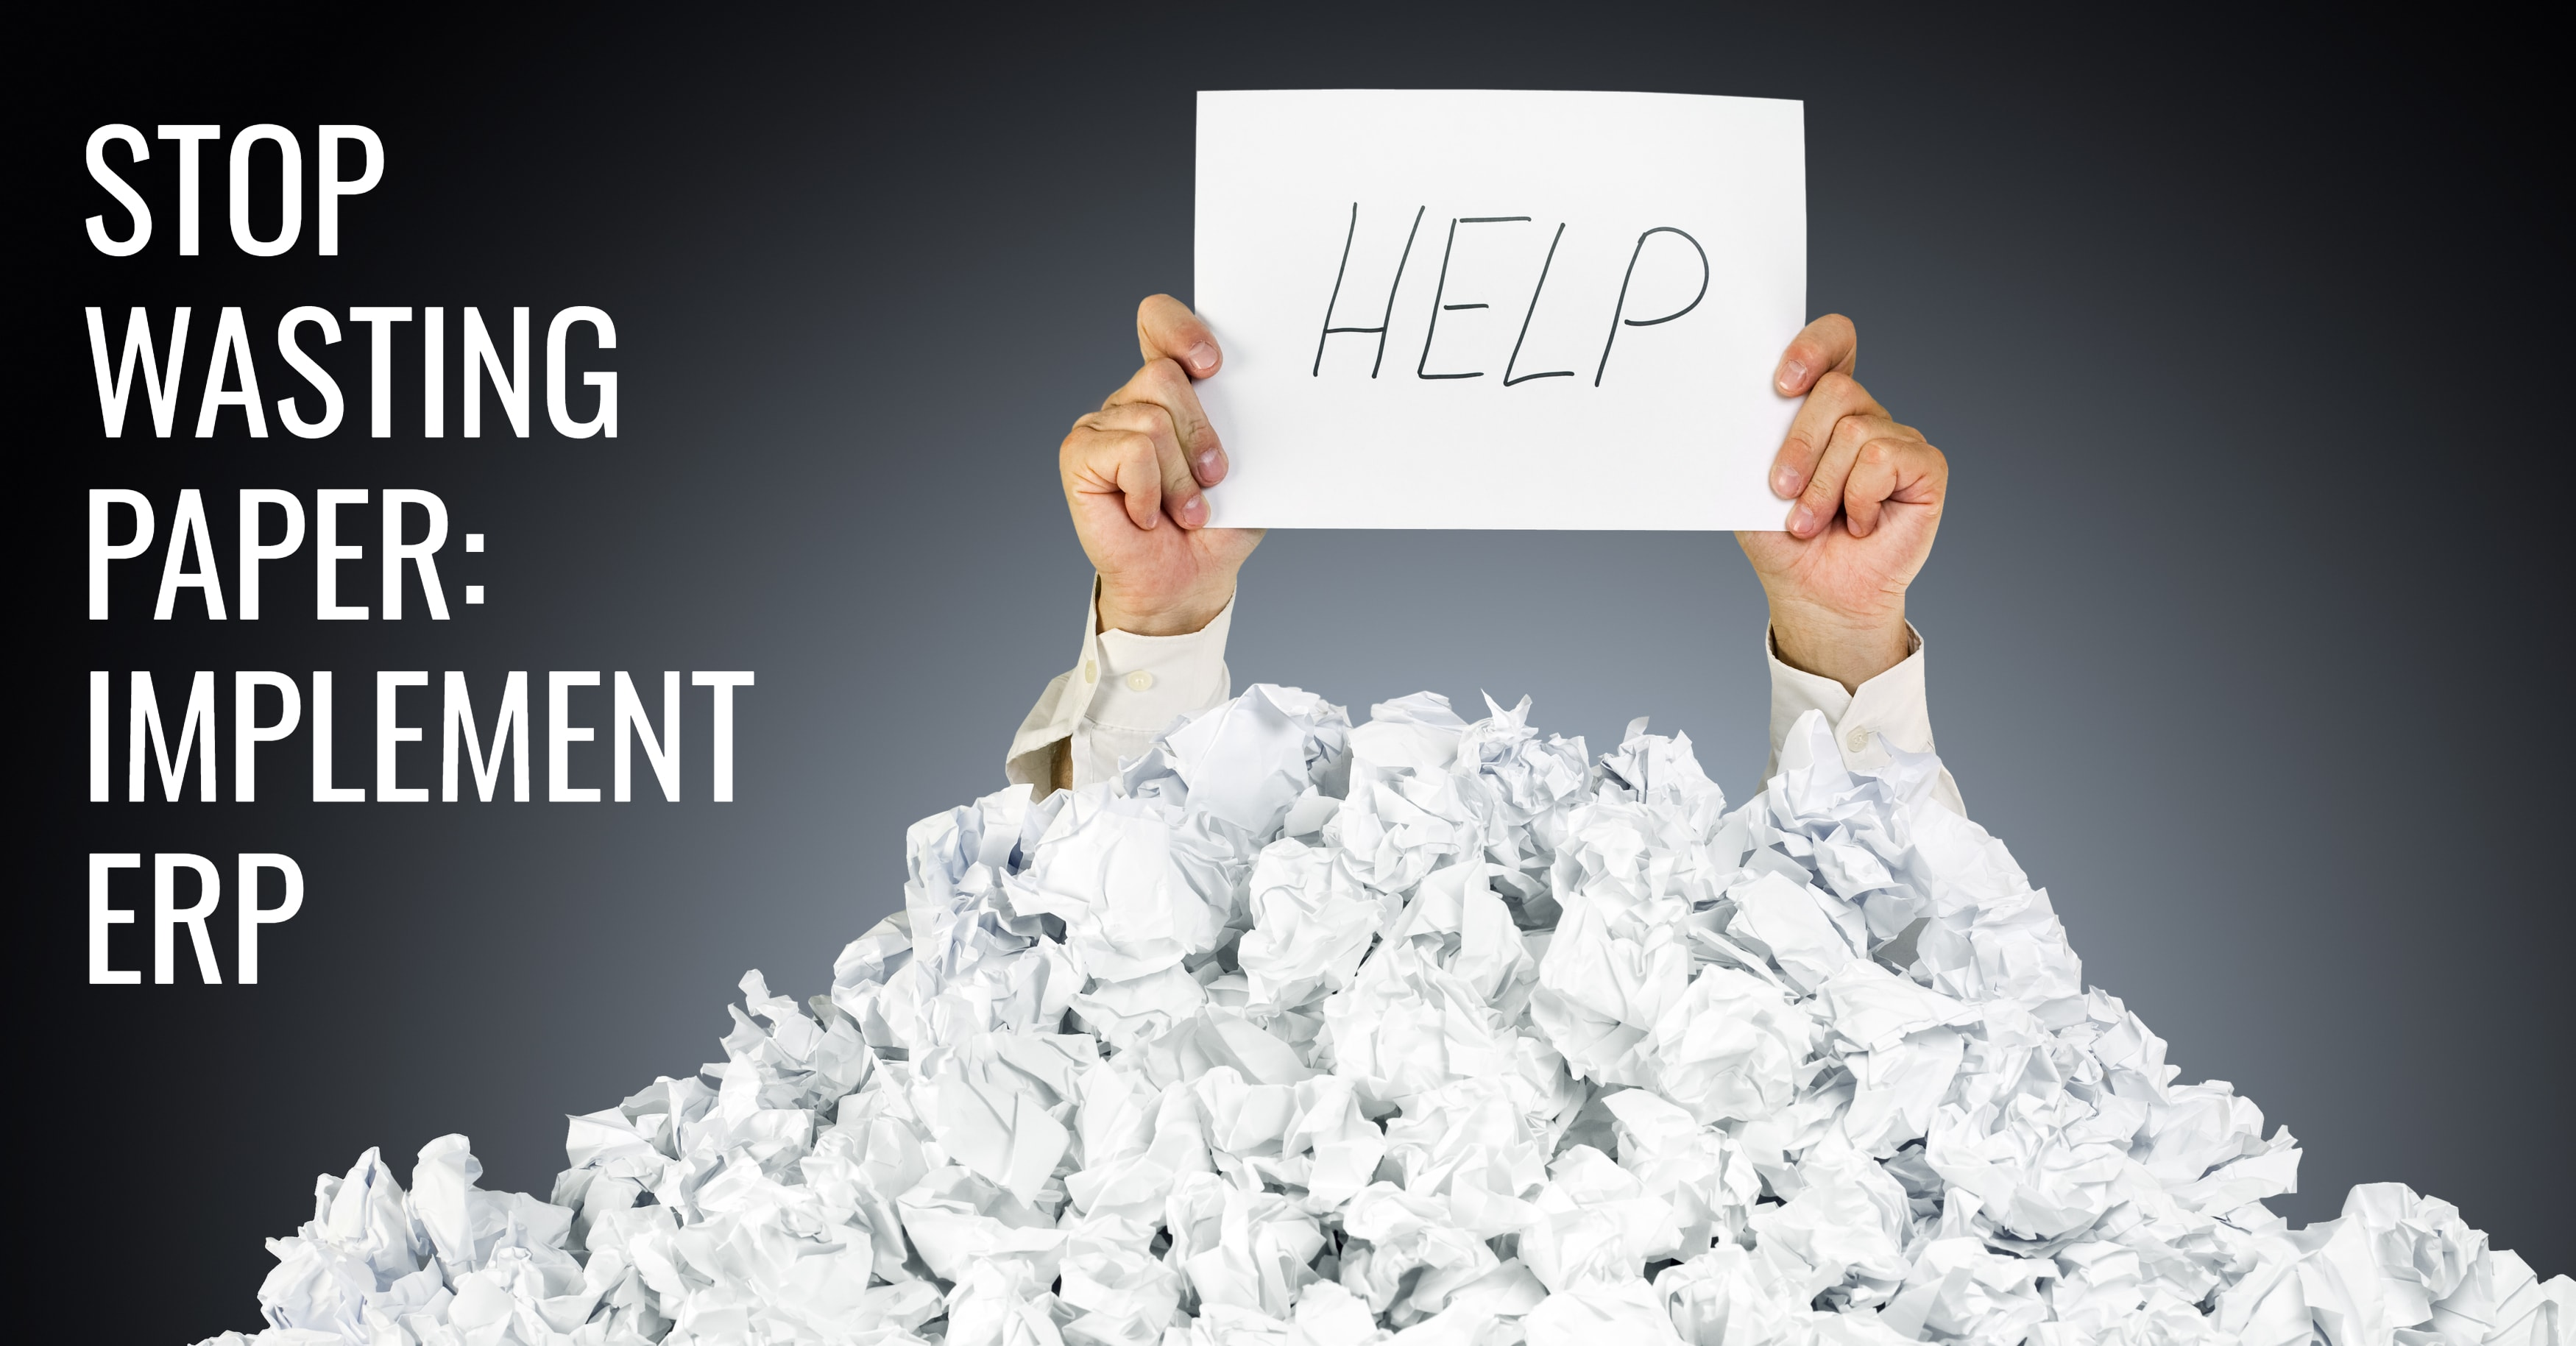 Stop Wasting Paper Implement Erp